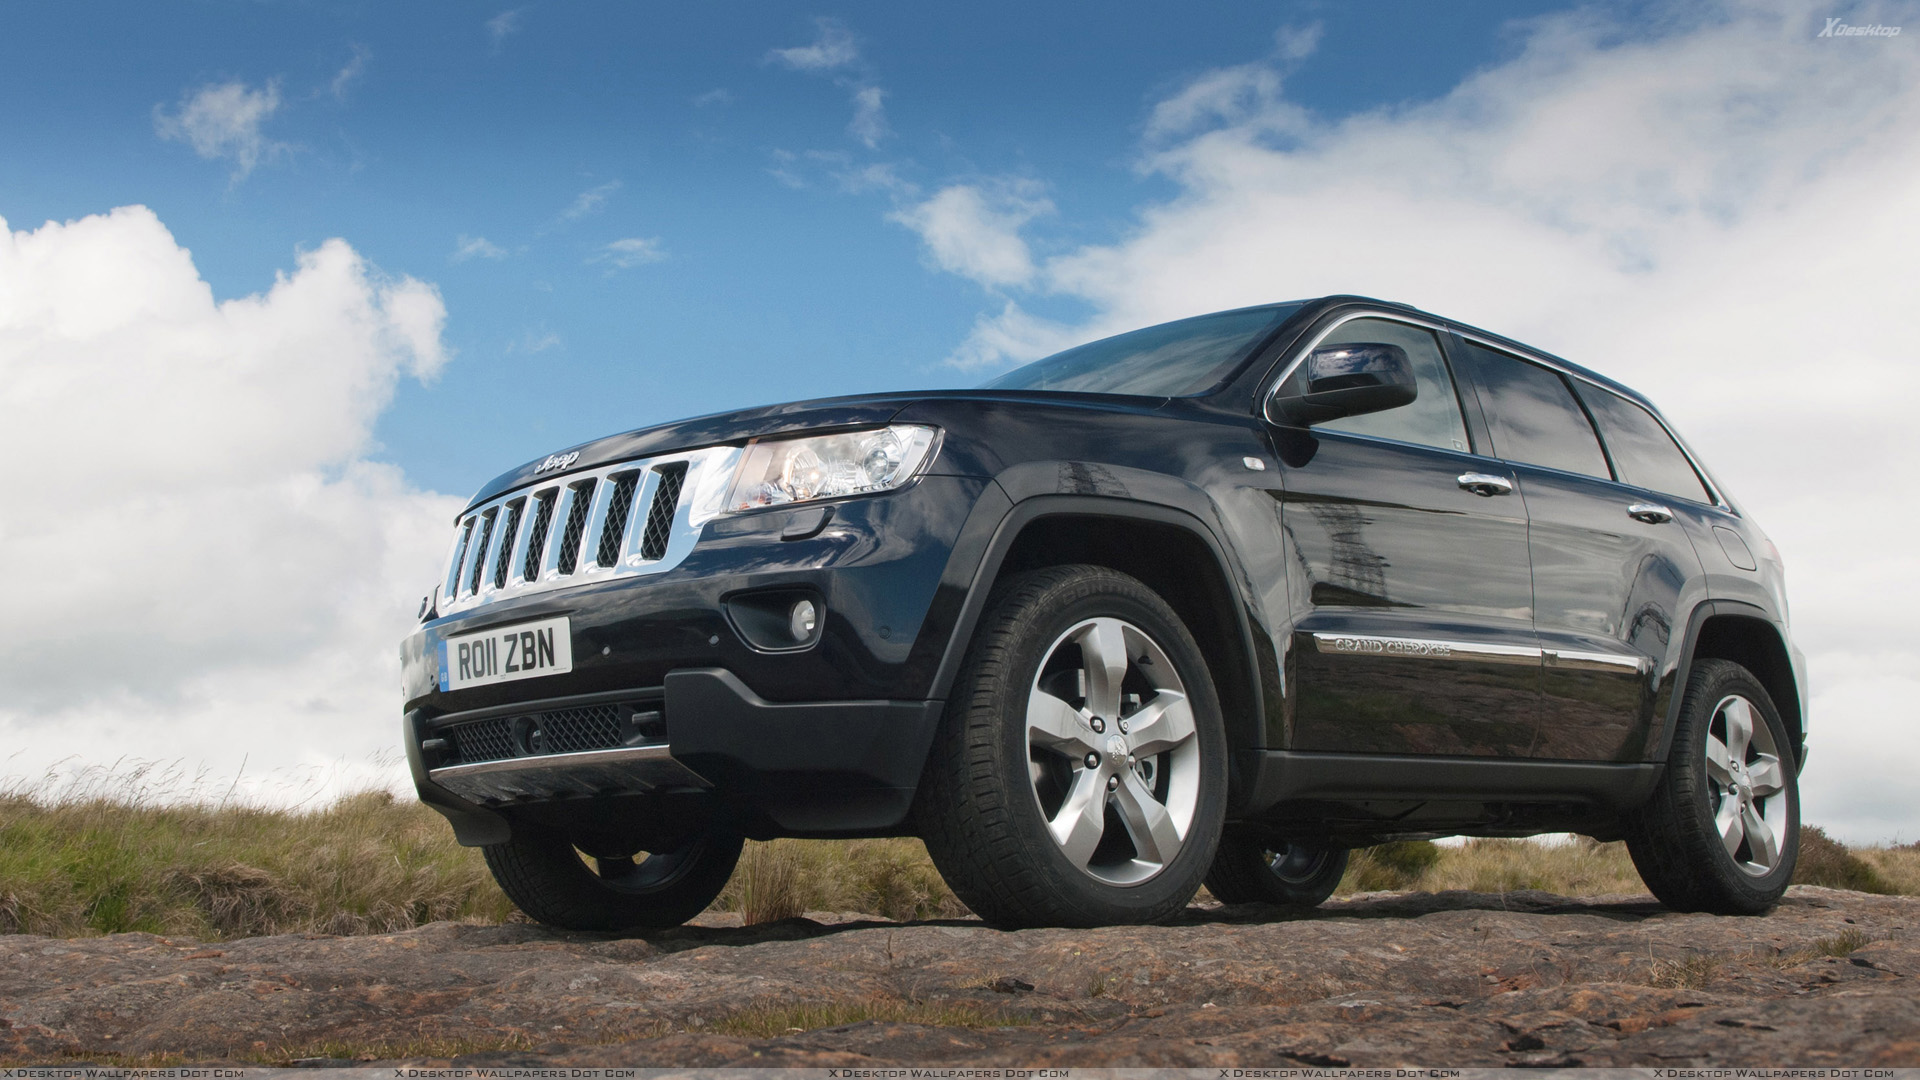 2011%20Jeep%20Grand%20Cherokee%20Front%20Headlight%20in%20Black